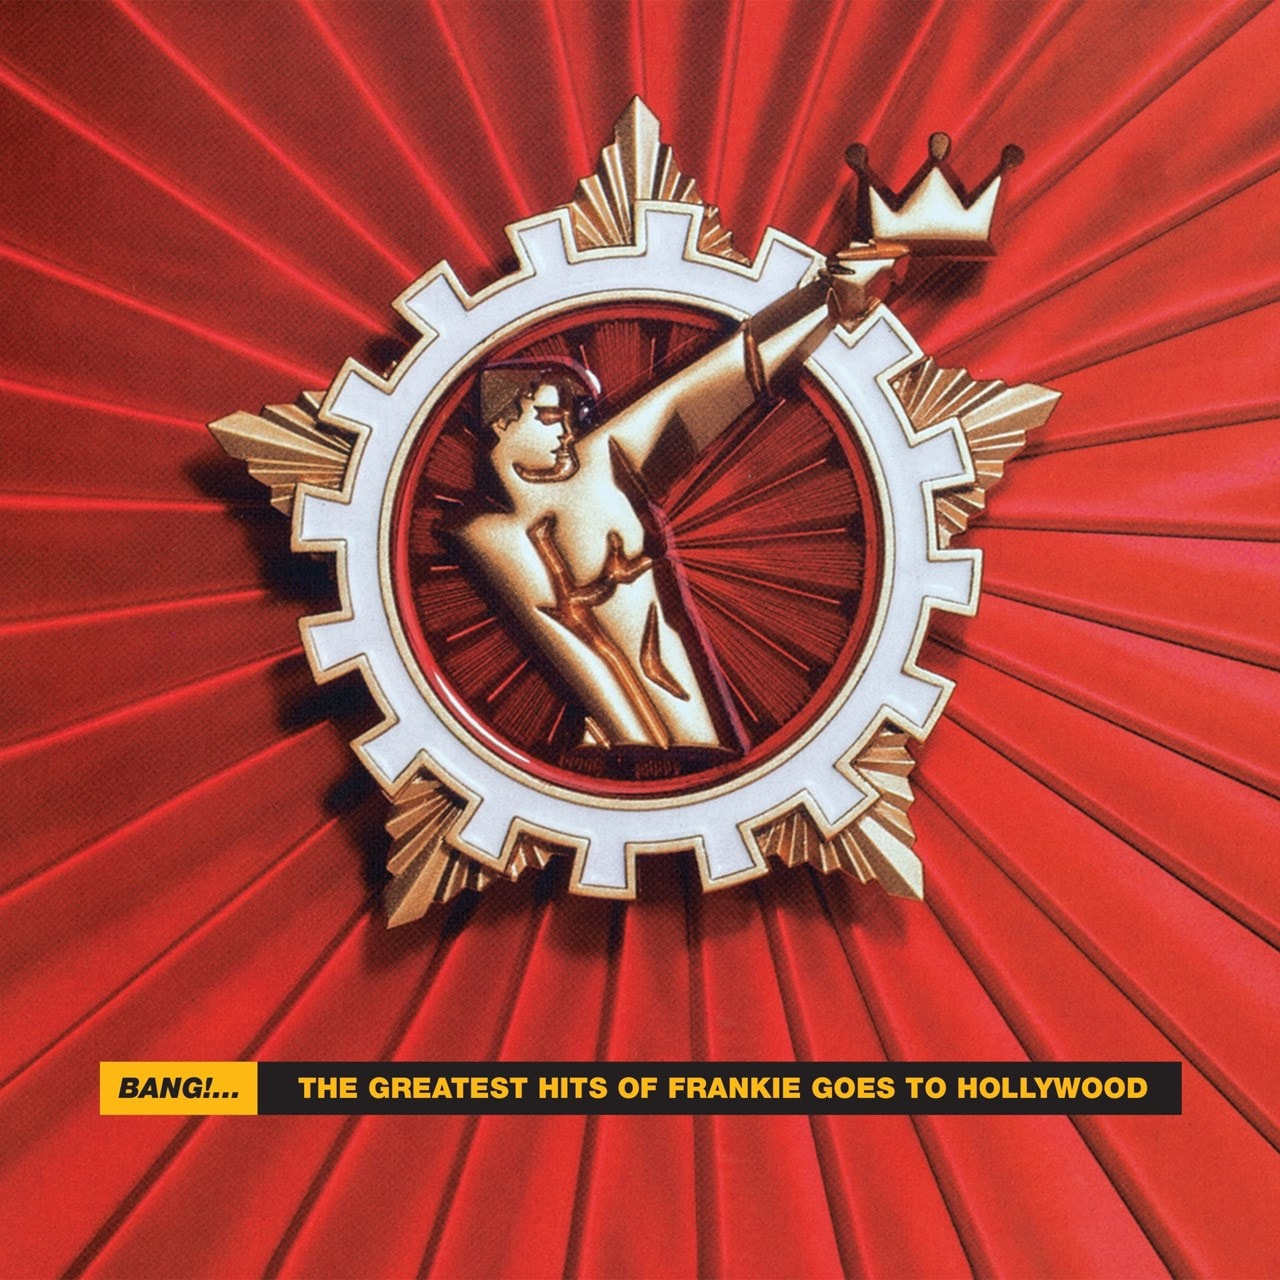 BANG! - THE GREATEST HITS OF FRANKIE GOES TO HOLLYWOOD